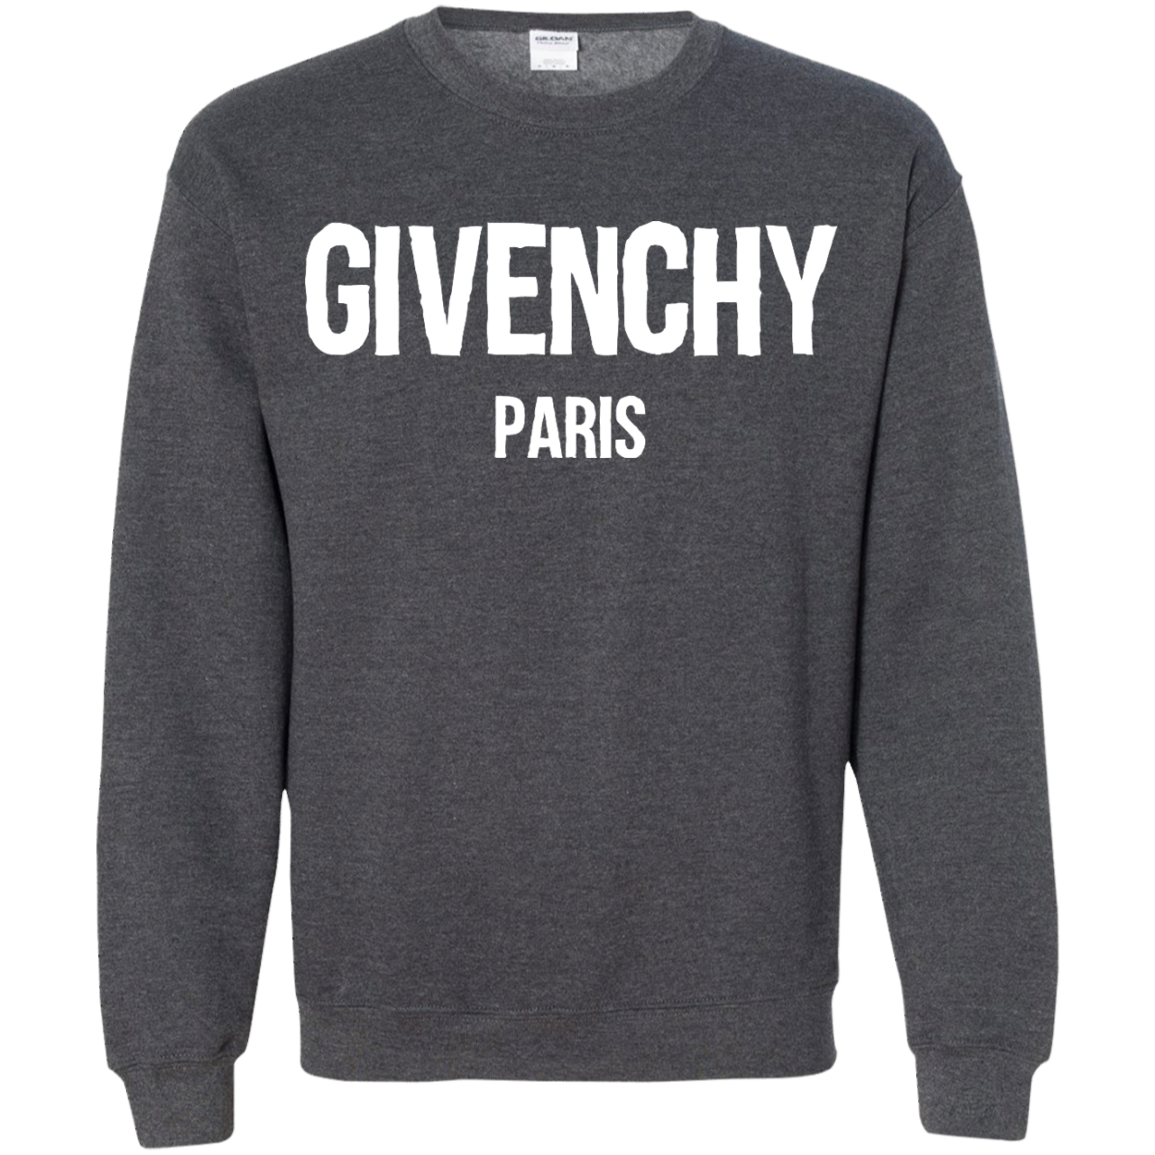 image 272px Givenchy Paris T Shirts, Hoodies, Sweaters